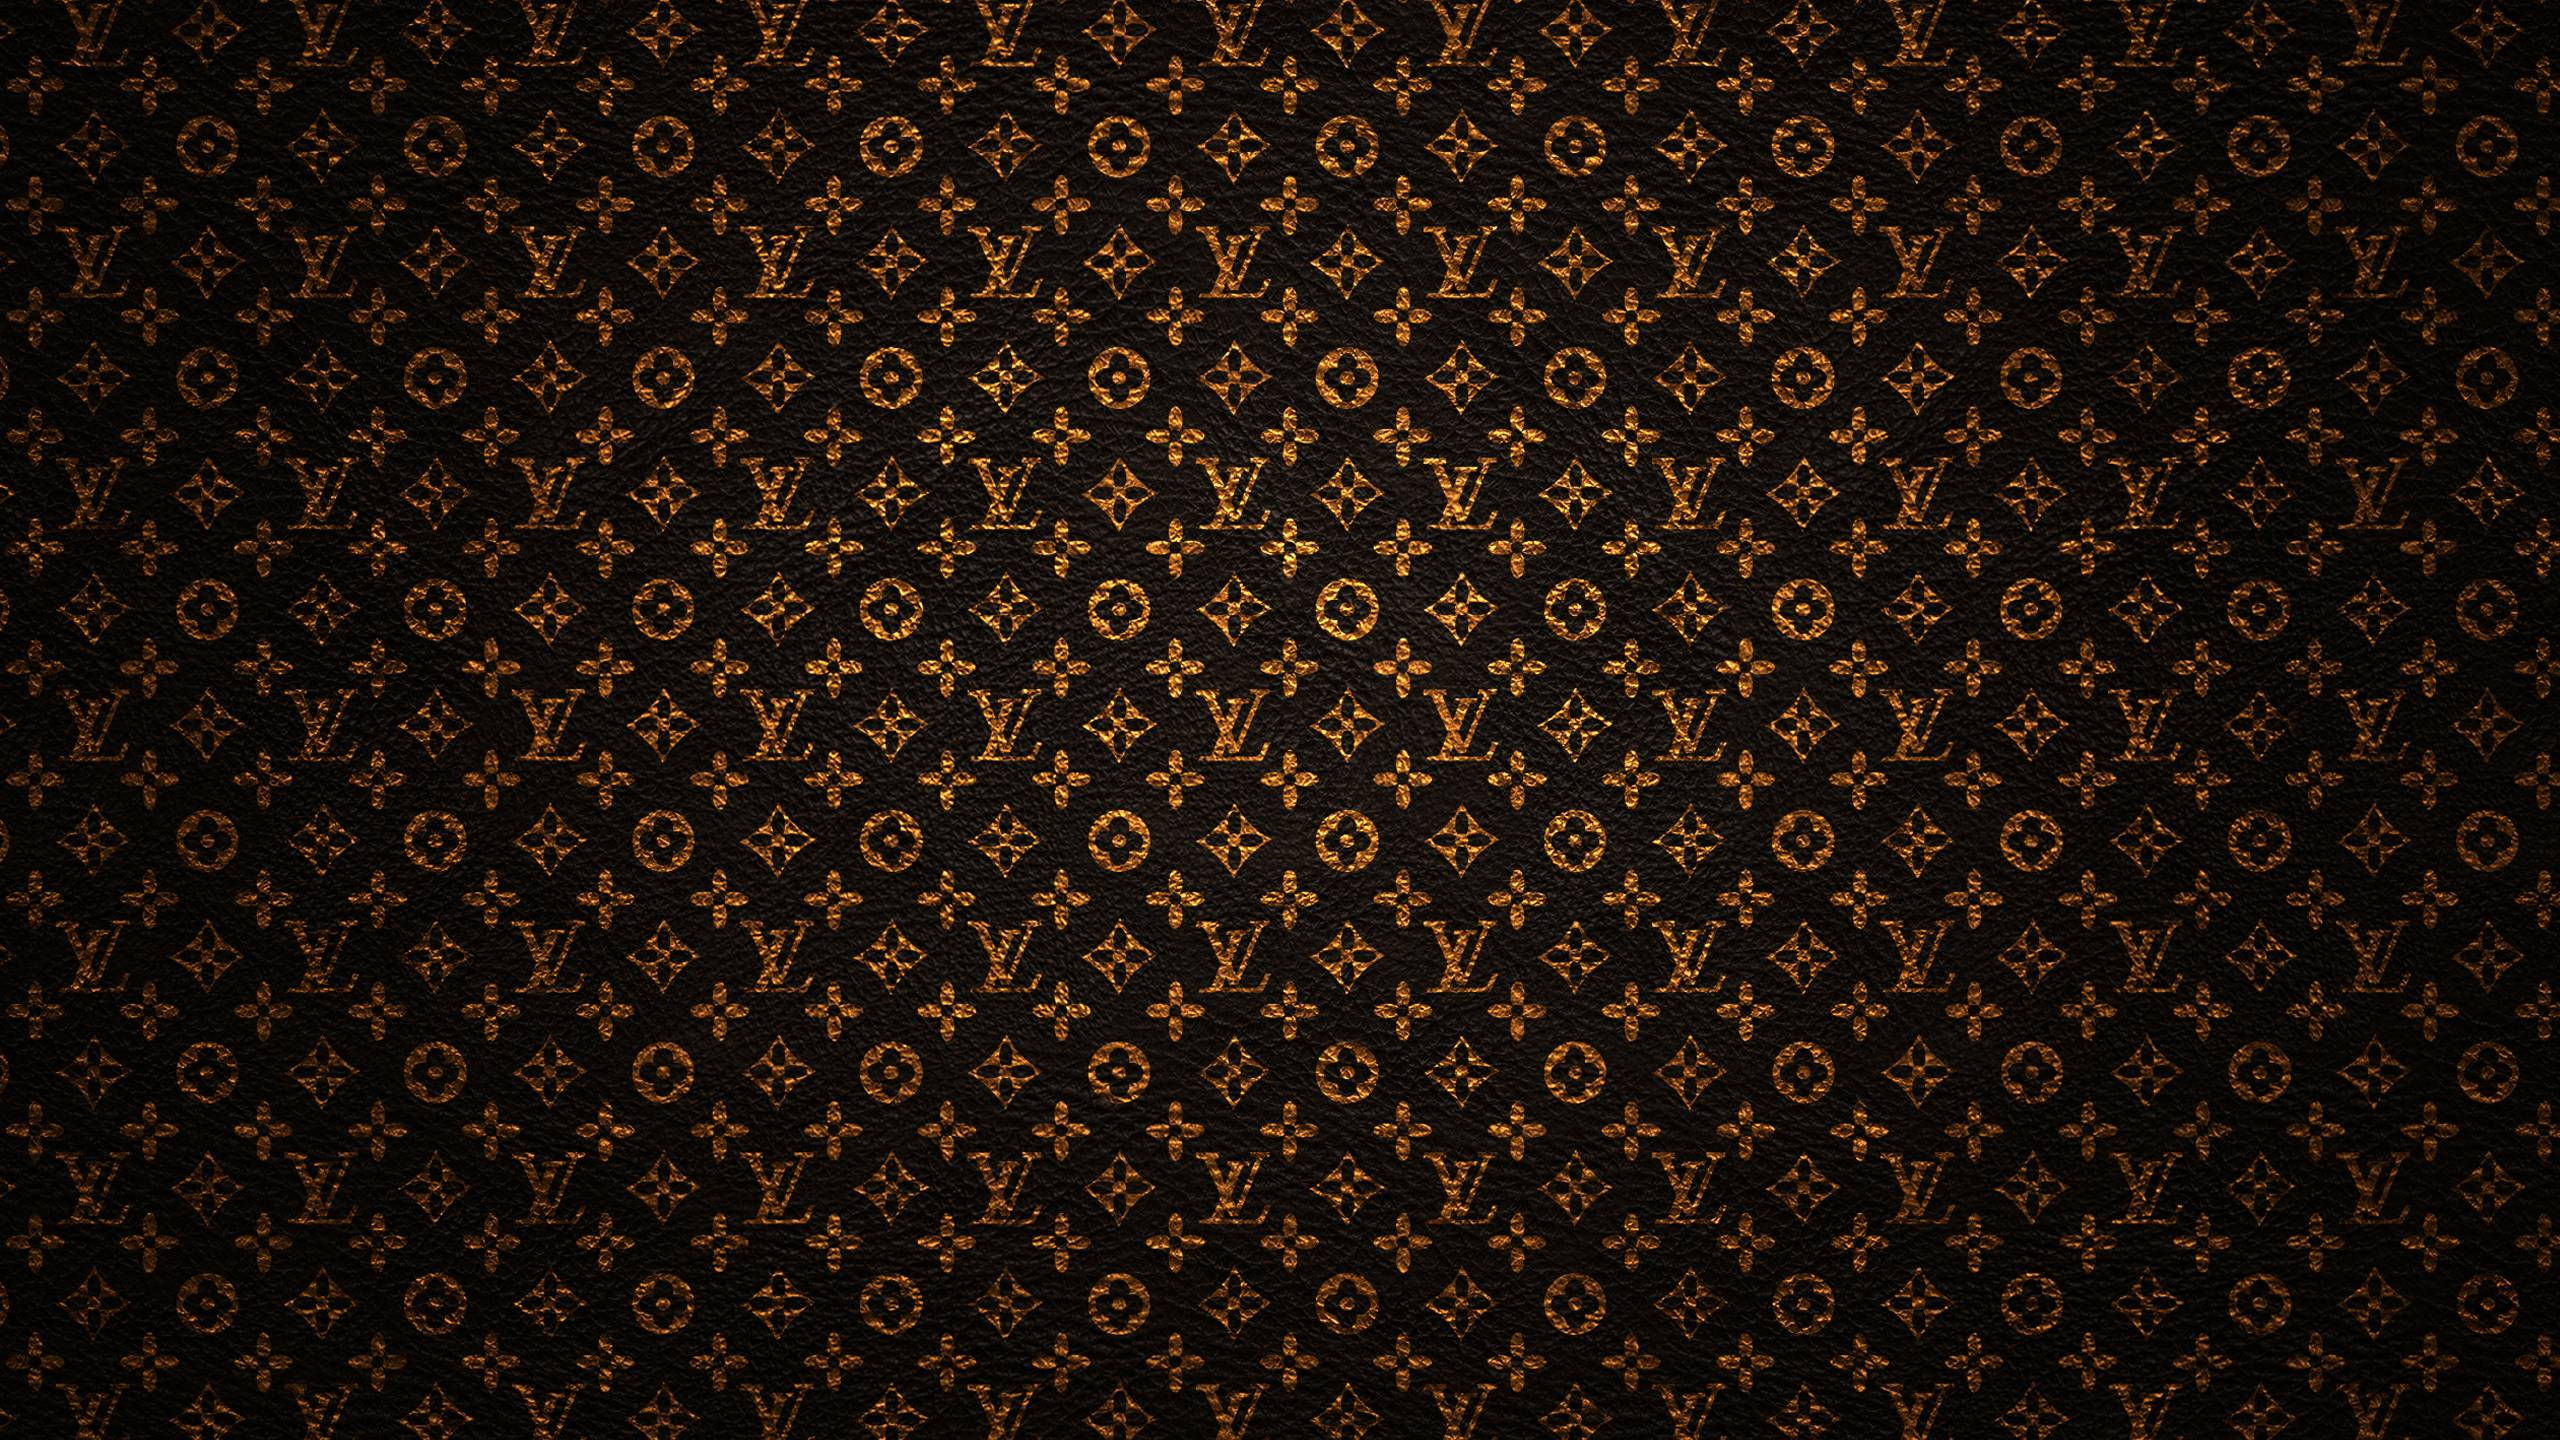 2560x1440 Louis Vuitton Backgrounds